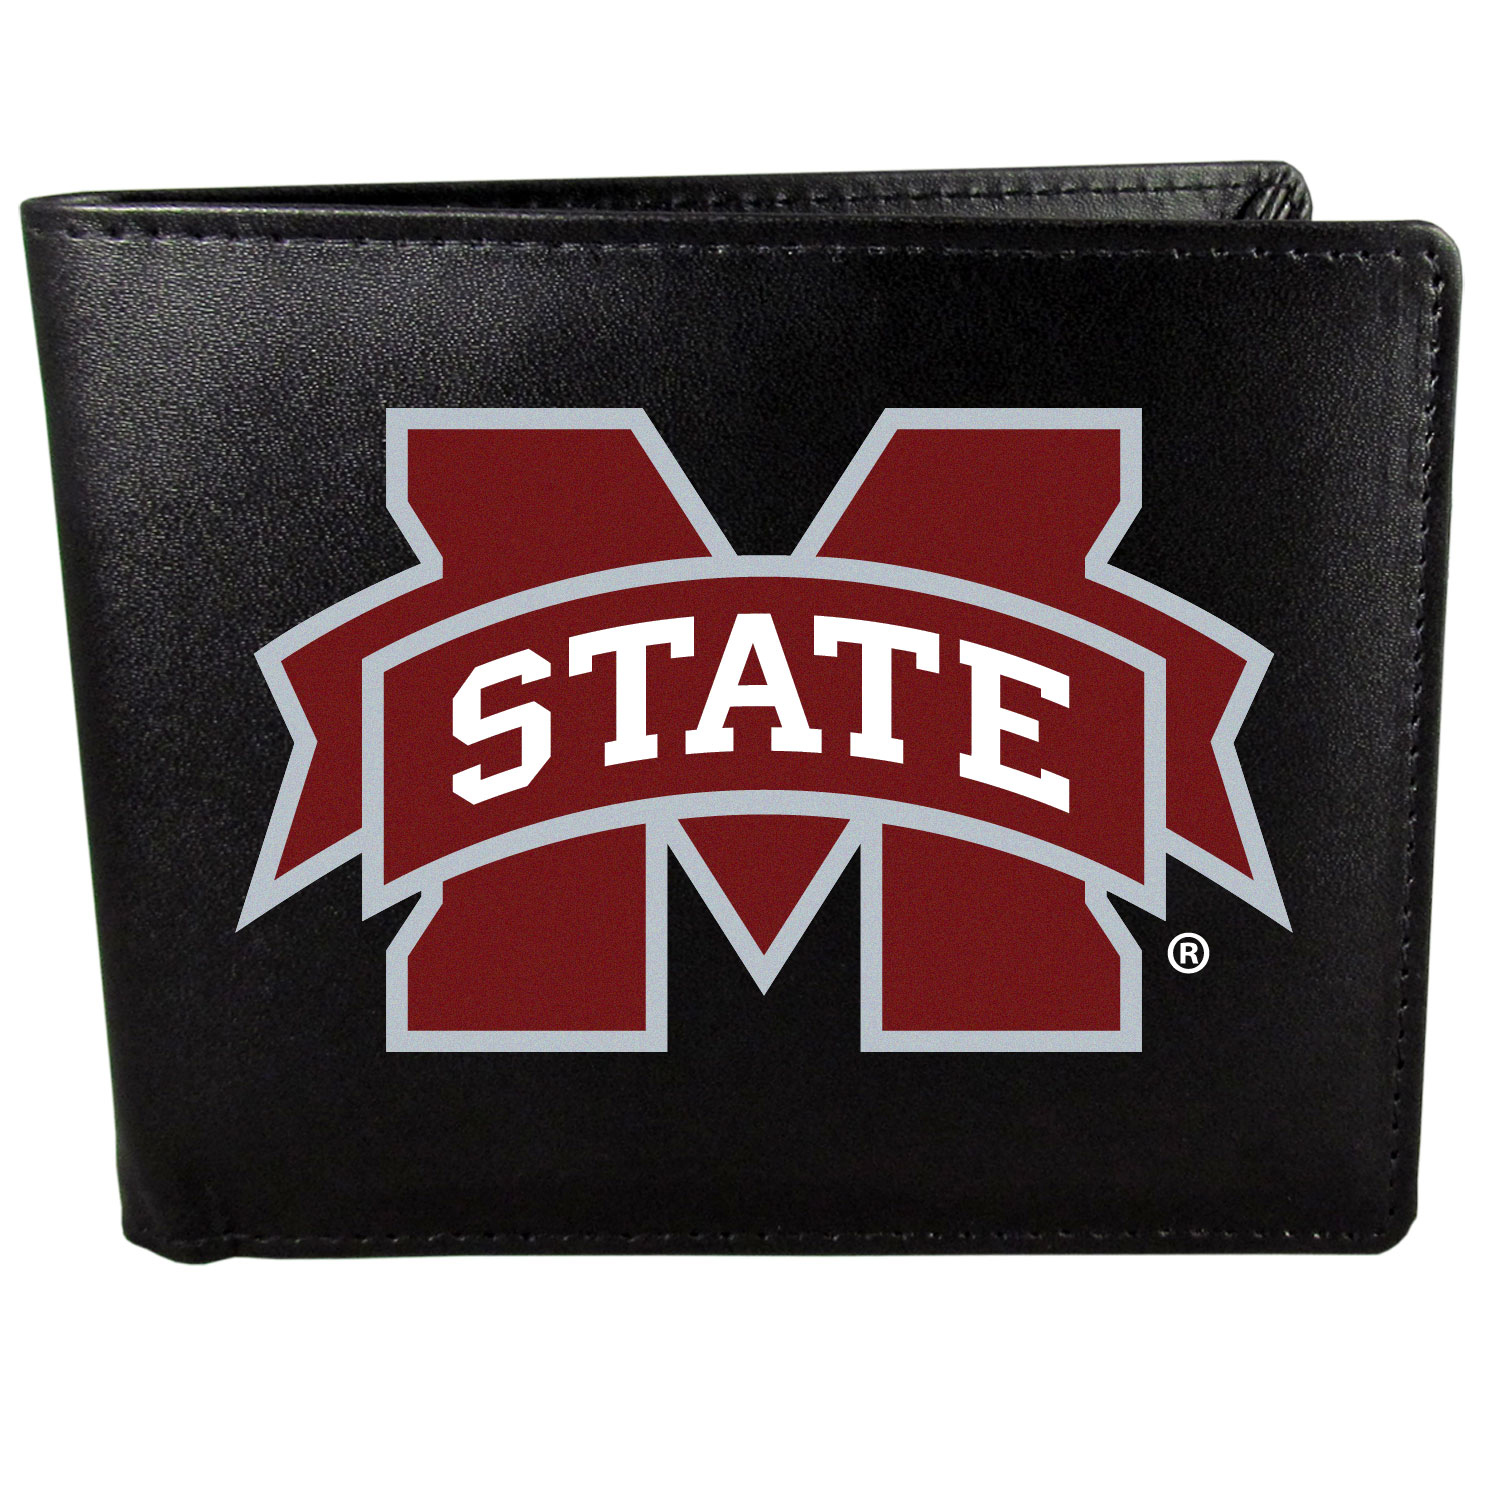 Mississippi St. Bulldogs Leather Bi-fold Wallet, Large Logo - Our classic fine leather bi-fold wallet is meticulously crafted with genuine leather that will age beautifully so you will have a quality wallet for years to come. The wallet opens to a large, billfold pocket and numerous credit card slots and has a convenient windowed ID slot. The front of the wallet features an extra large Mississippi St. Bulldogs printed logo.